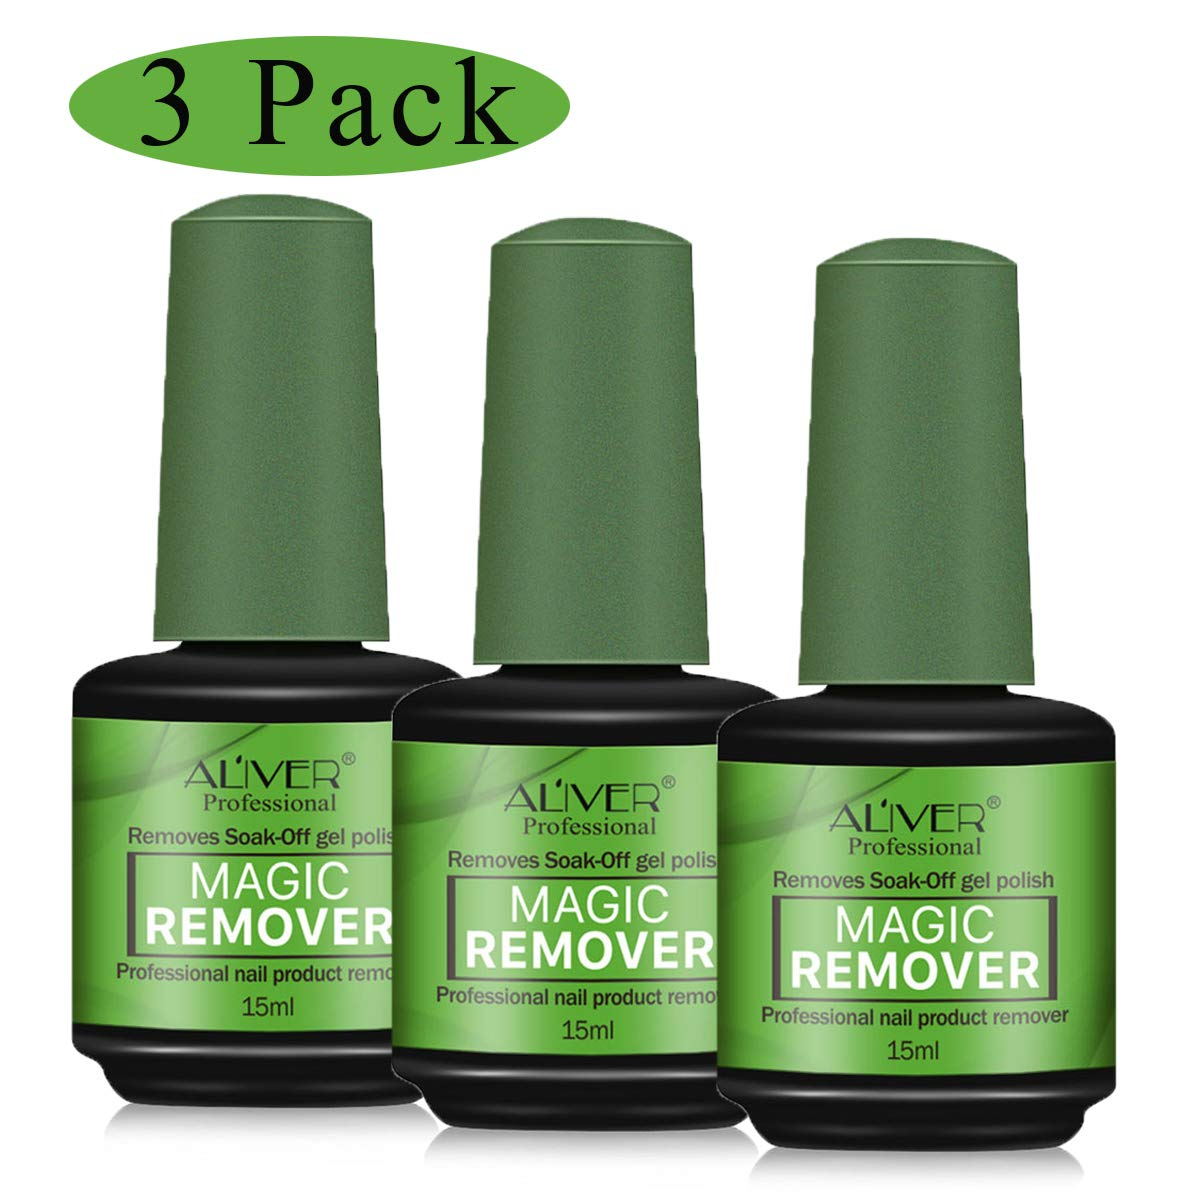 3 Pack Nail Polish Remover, Easily & Quickly Removes Soak-Off Gel Polish, Professional Non-Irritating Nail Polish Remover, 2-3 Minutes Easily & Quickly Don't Hurt Your Nails (3 Pack) by ZZLM